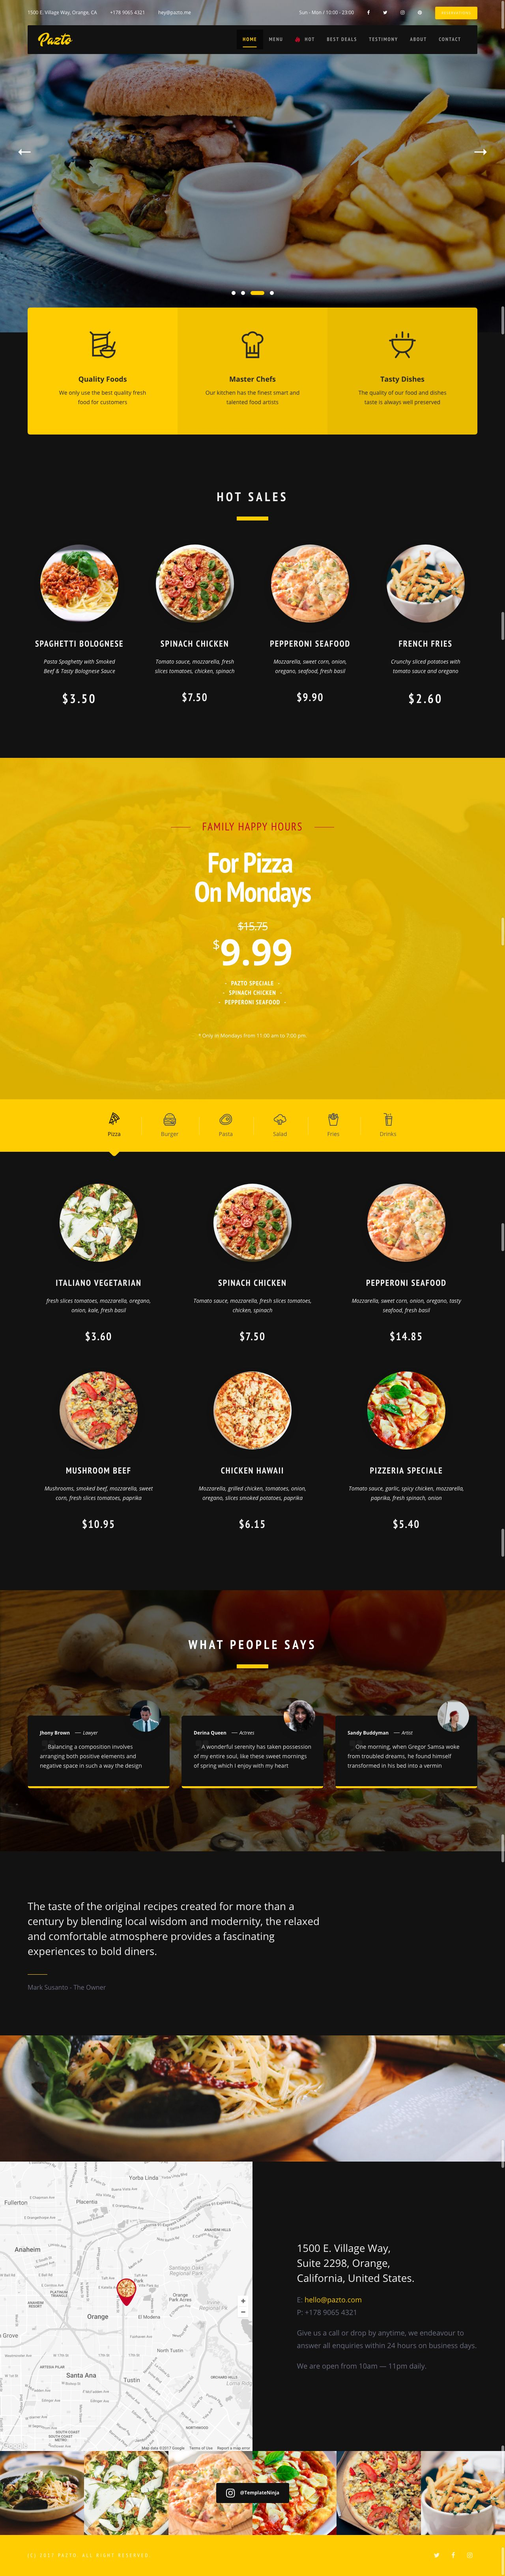 Pazto - Food And Restaurant HTML Template Screenshot 1